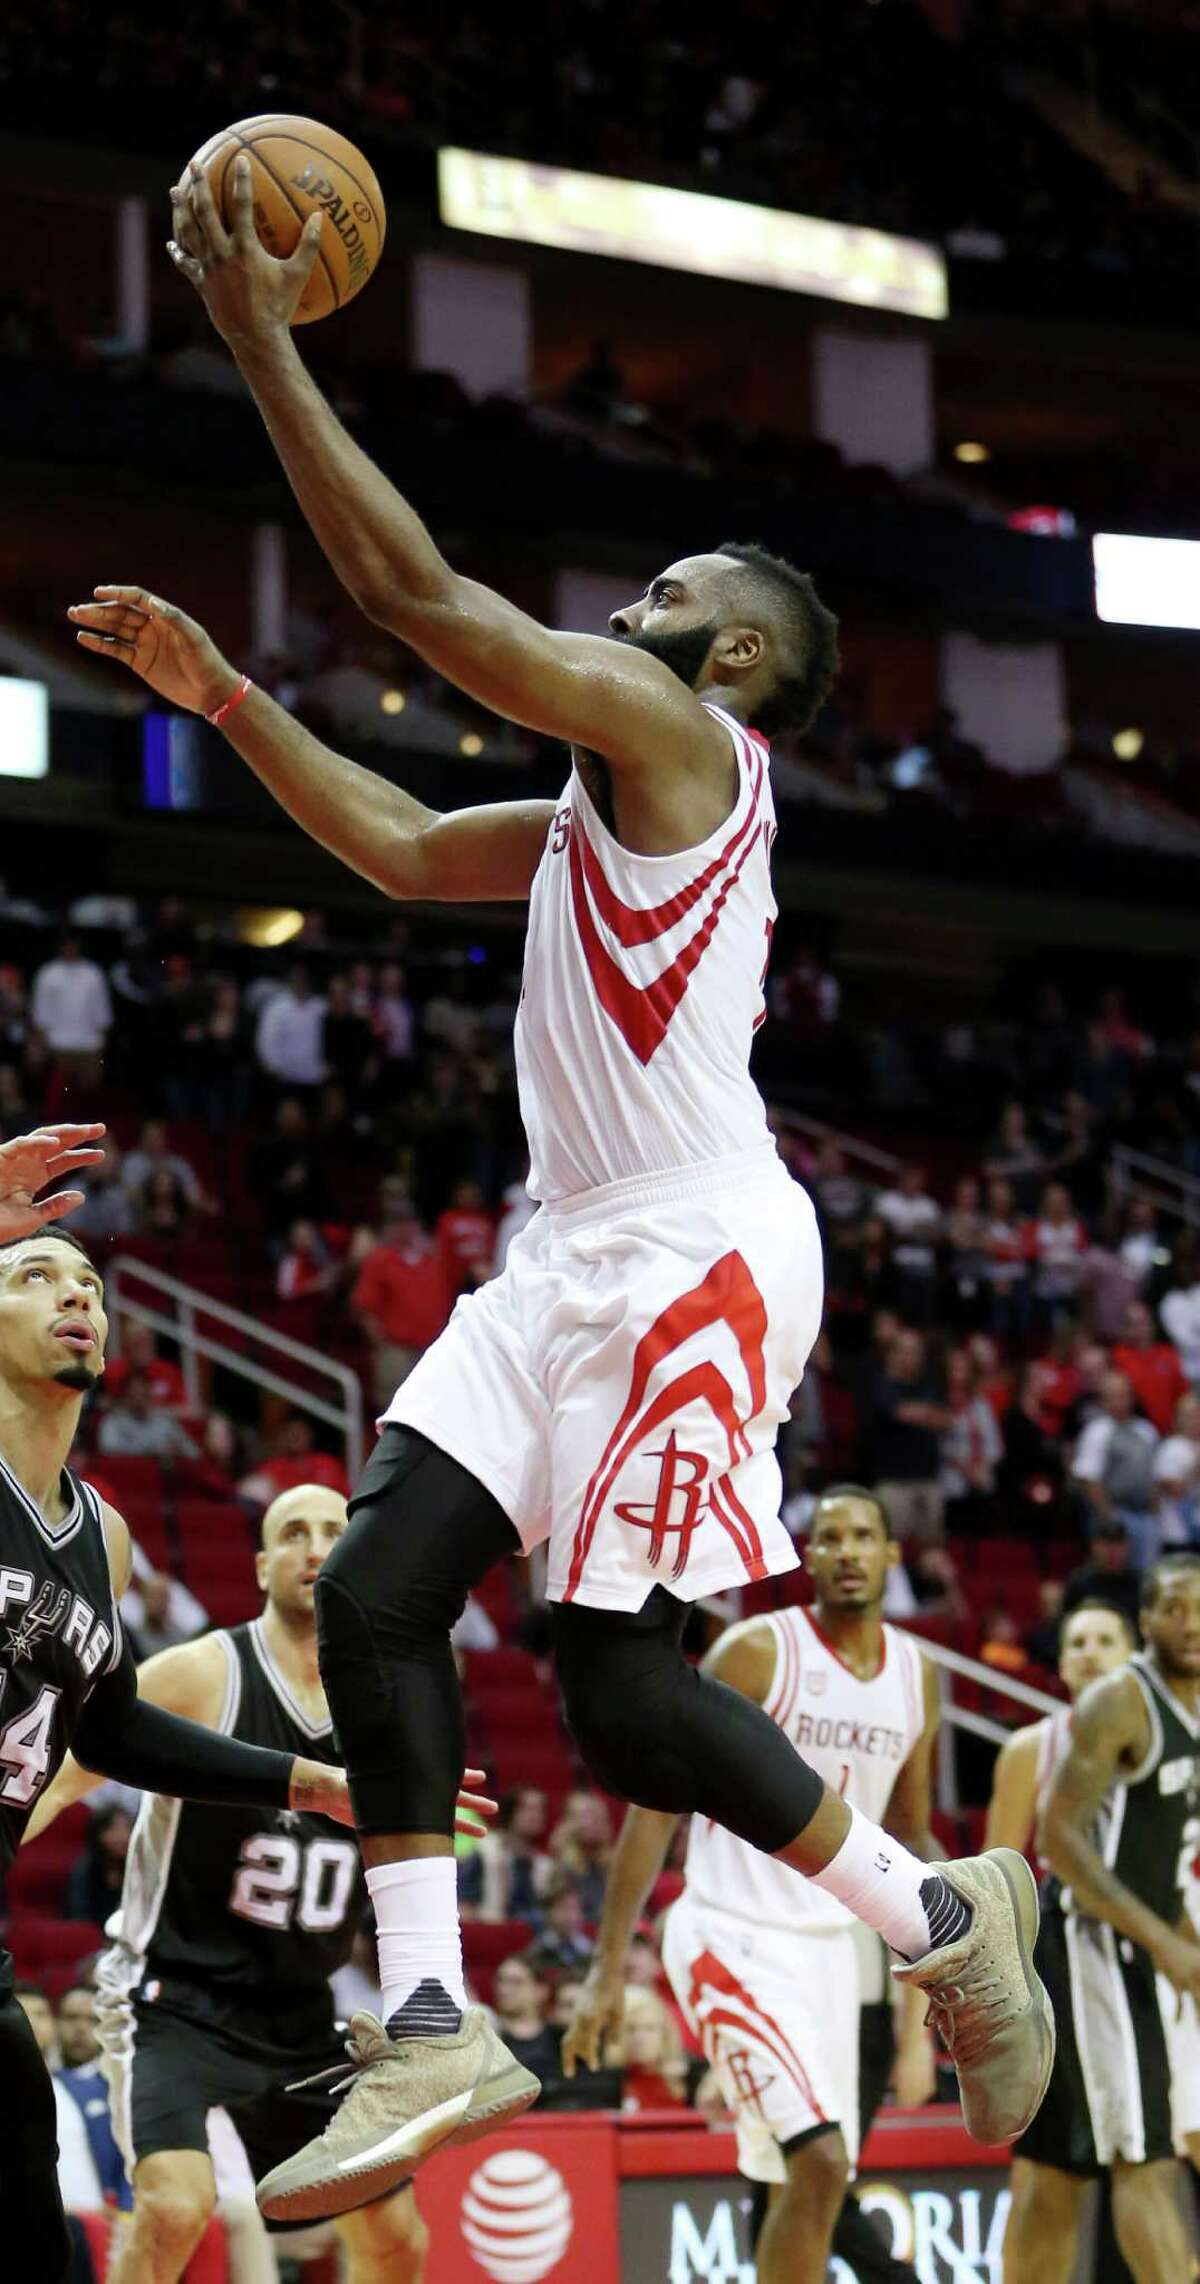 Houston Rockets guard James Harden (13) goes for a lay up during the second half of the game Saturday, Nov. 12, 2016, in Houston. The Rockets lost to the Spurs 106-100.